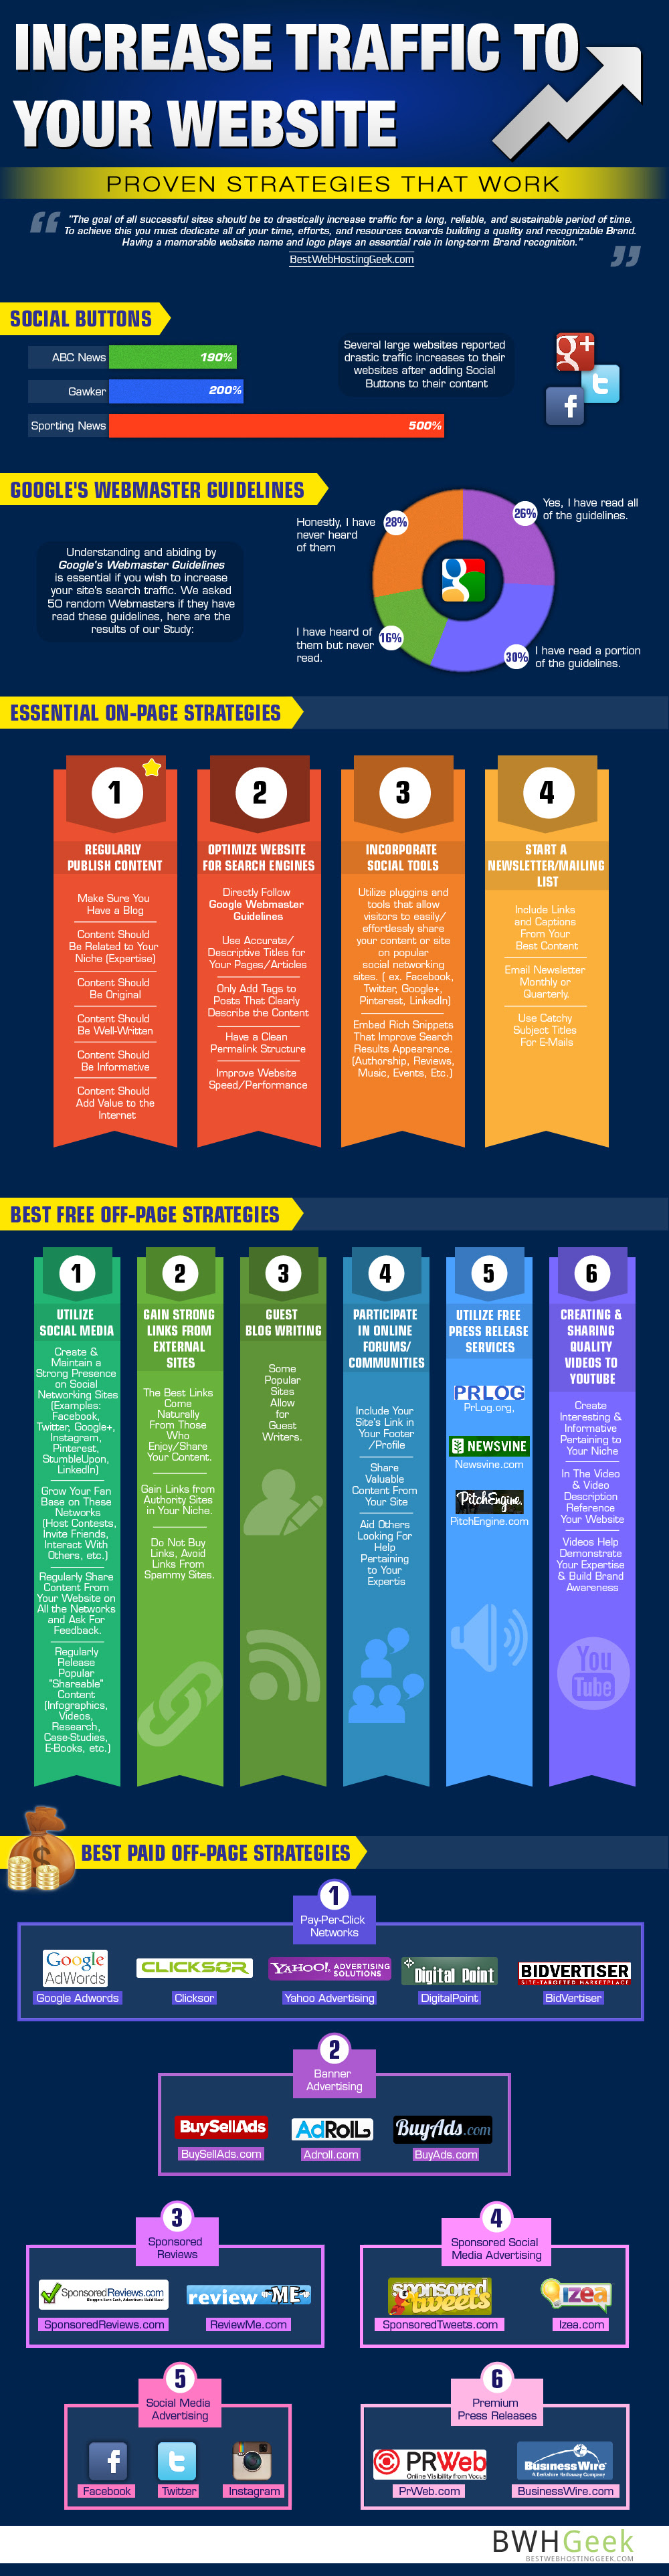 Proven Strategies How To Increase Traffic To Your Website : infographic